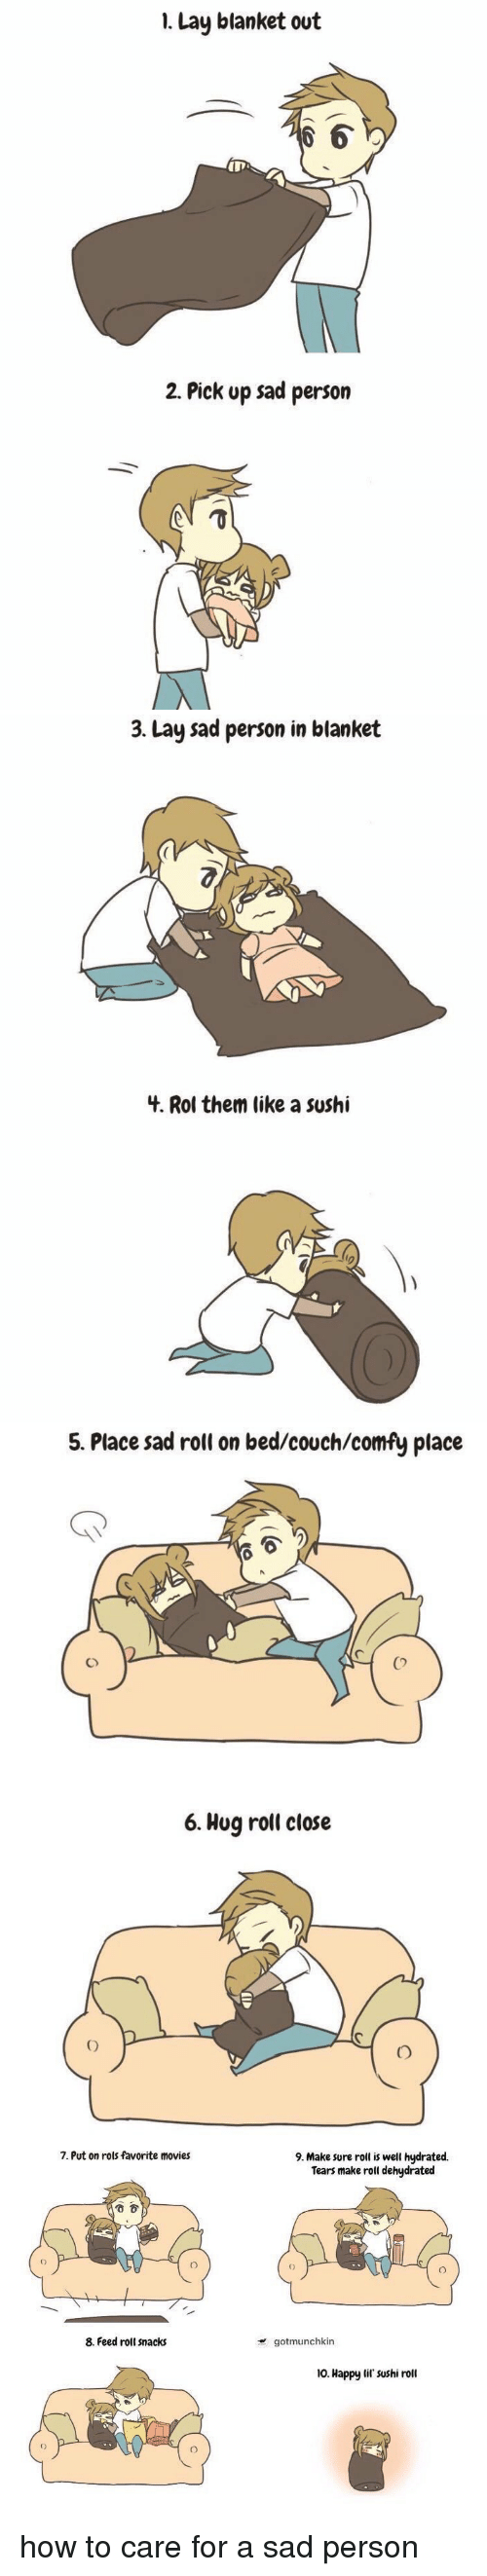 Lay's, Movies, and Ups: 1. Lay blanket out  OD  2. Pick up sad person   3. Lay sad person in blanket  4. Rol them like a sushi   5. Place sad roll on bed/couch/comfy place  6. Hug roll close   7. Put on rols favorite movies  8. Feed roll snacks  9. Make sure roll is well hydrated.  Tears make roll dehydrated  gotmunchkin  no. Happy lil sushi roll how to care for a sad person